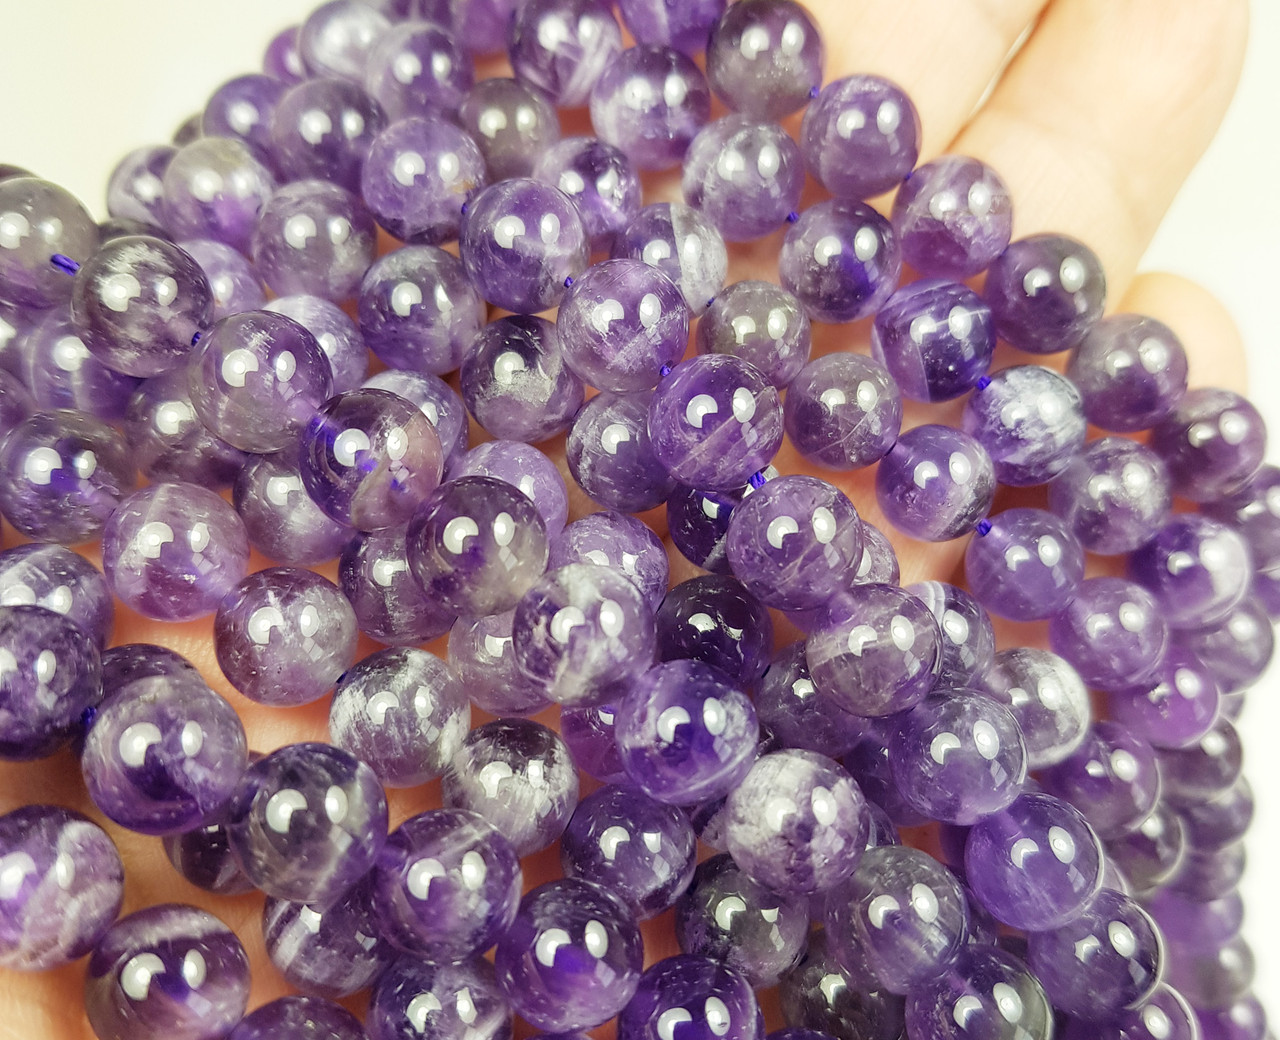 Brand New Amazing Item at Low Price 7-7.5mm Size AMETHYST Purple Chalcedony Smooth Round Balls,Full 14 Inch Strand